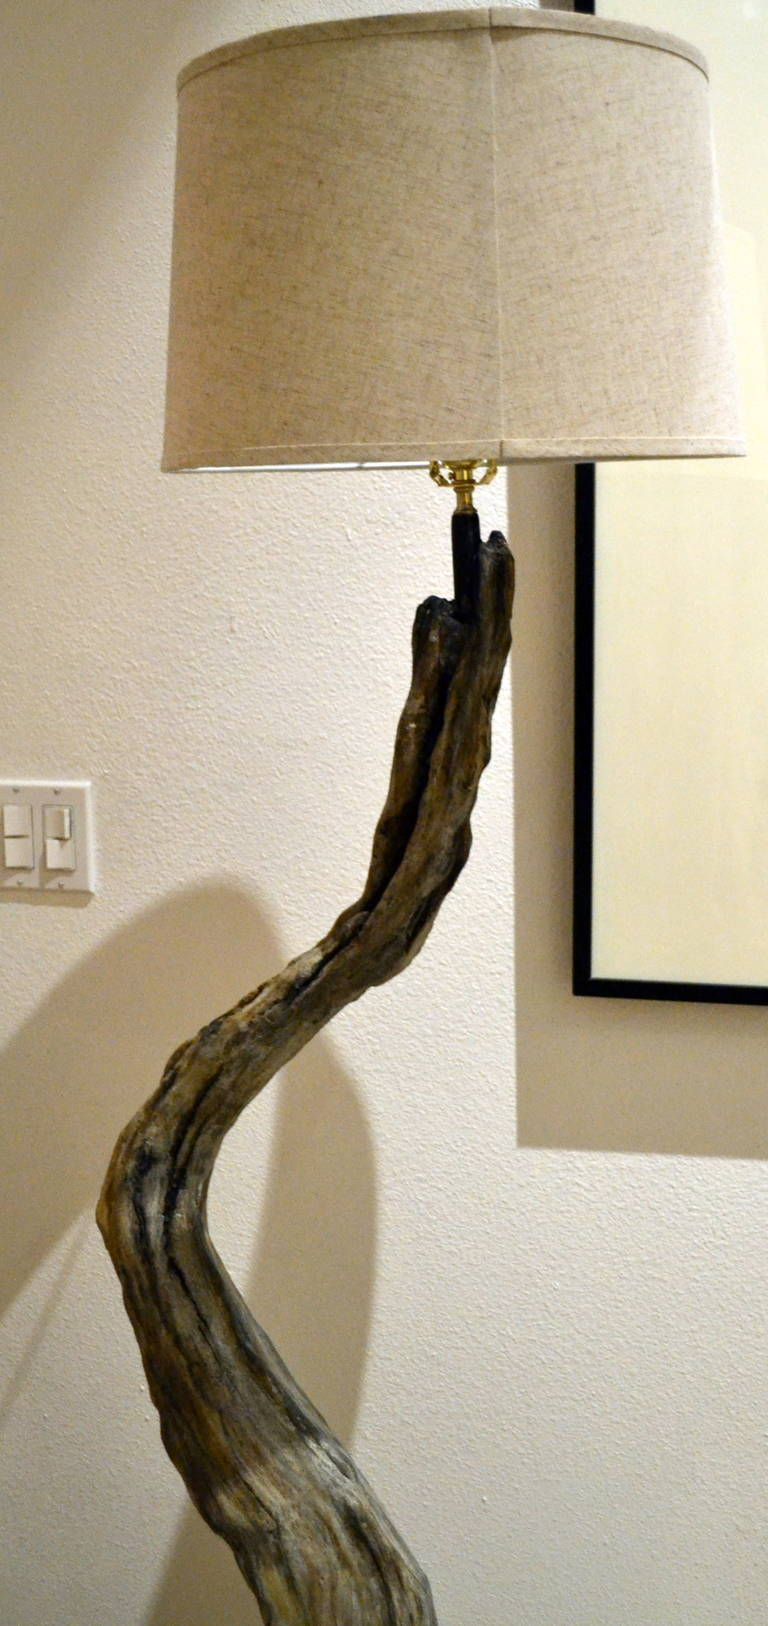 shade driftwood natural lamps nobby style with sculptural floor ideas design coast fitting rustic lamp or for wooden a wood room